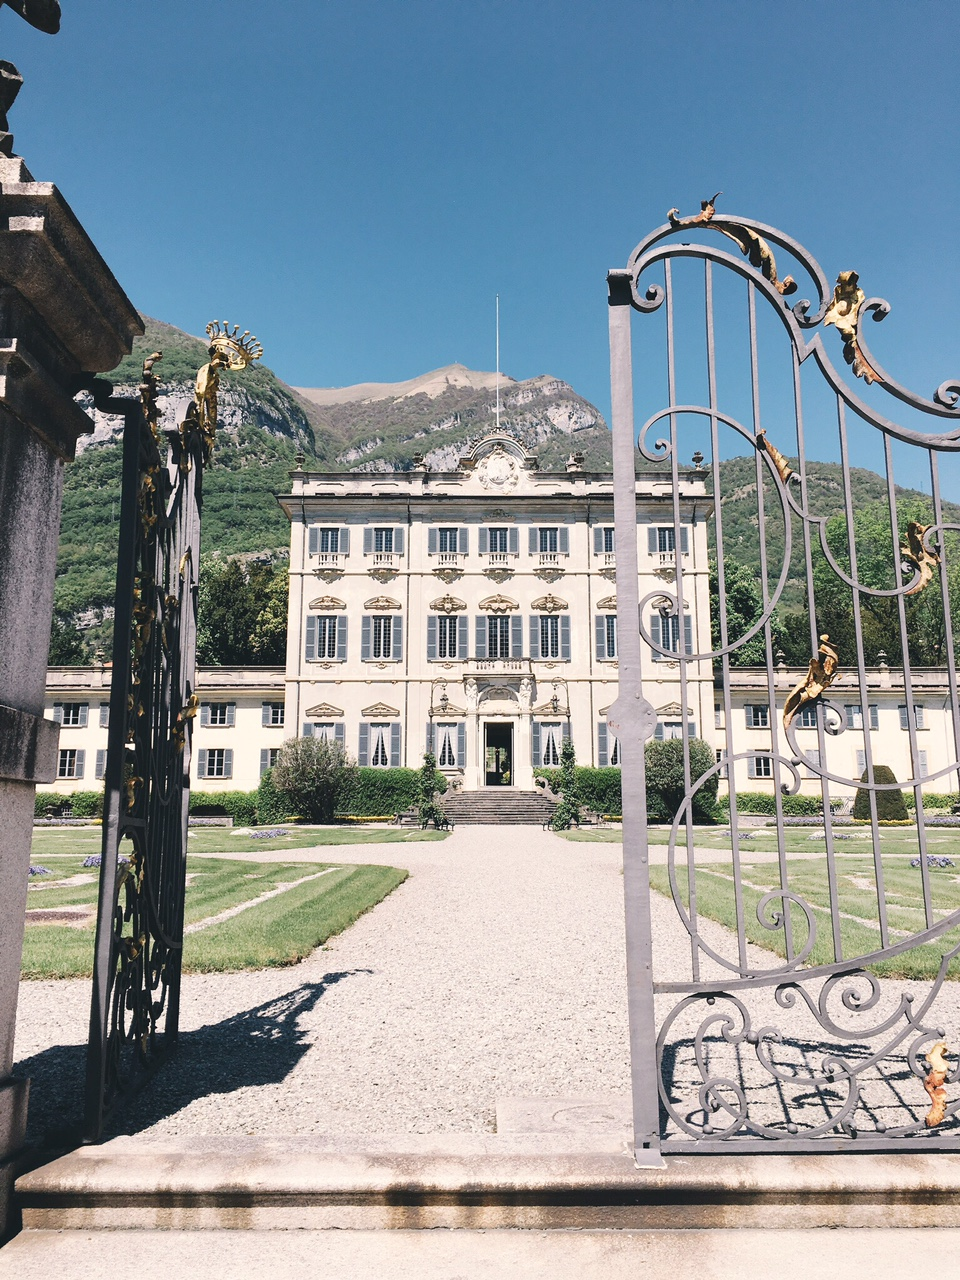 View of Villa Sola Cabiati from the street in Lake Como